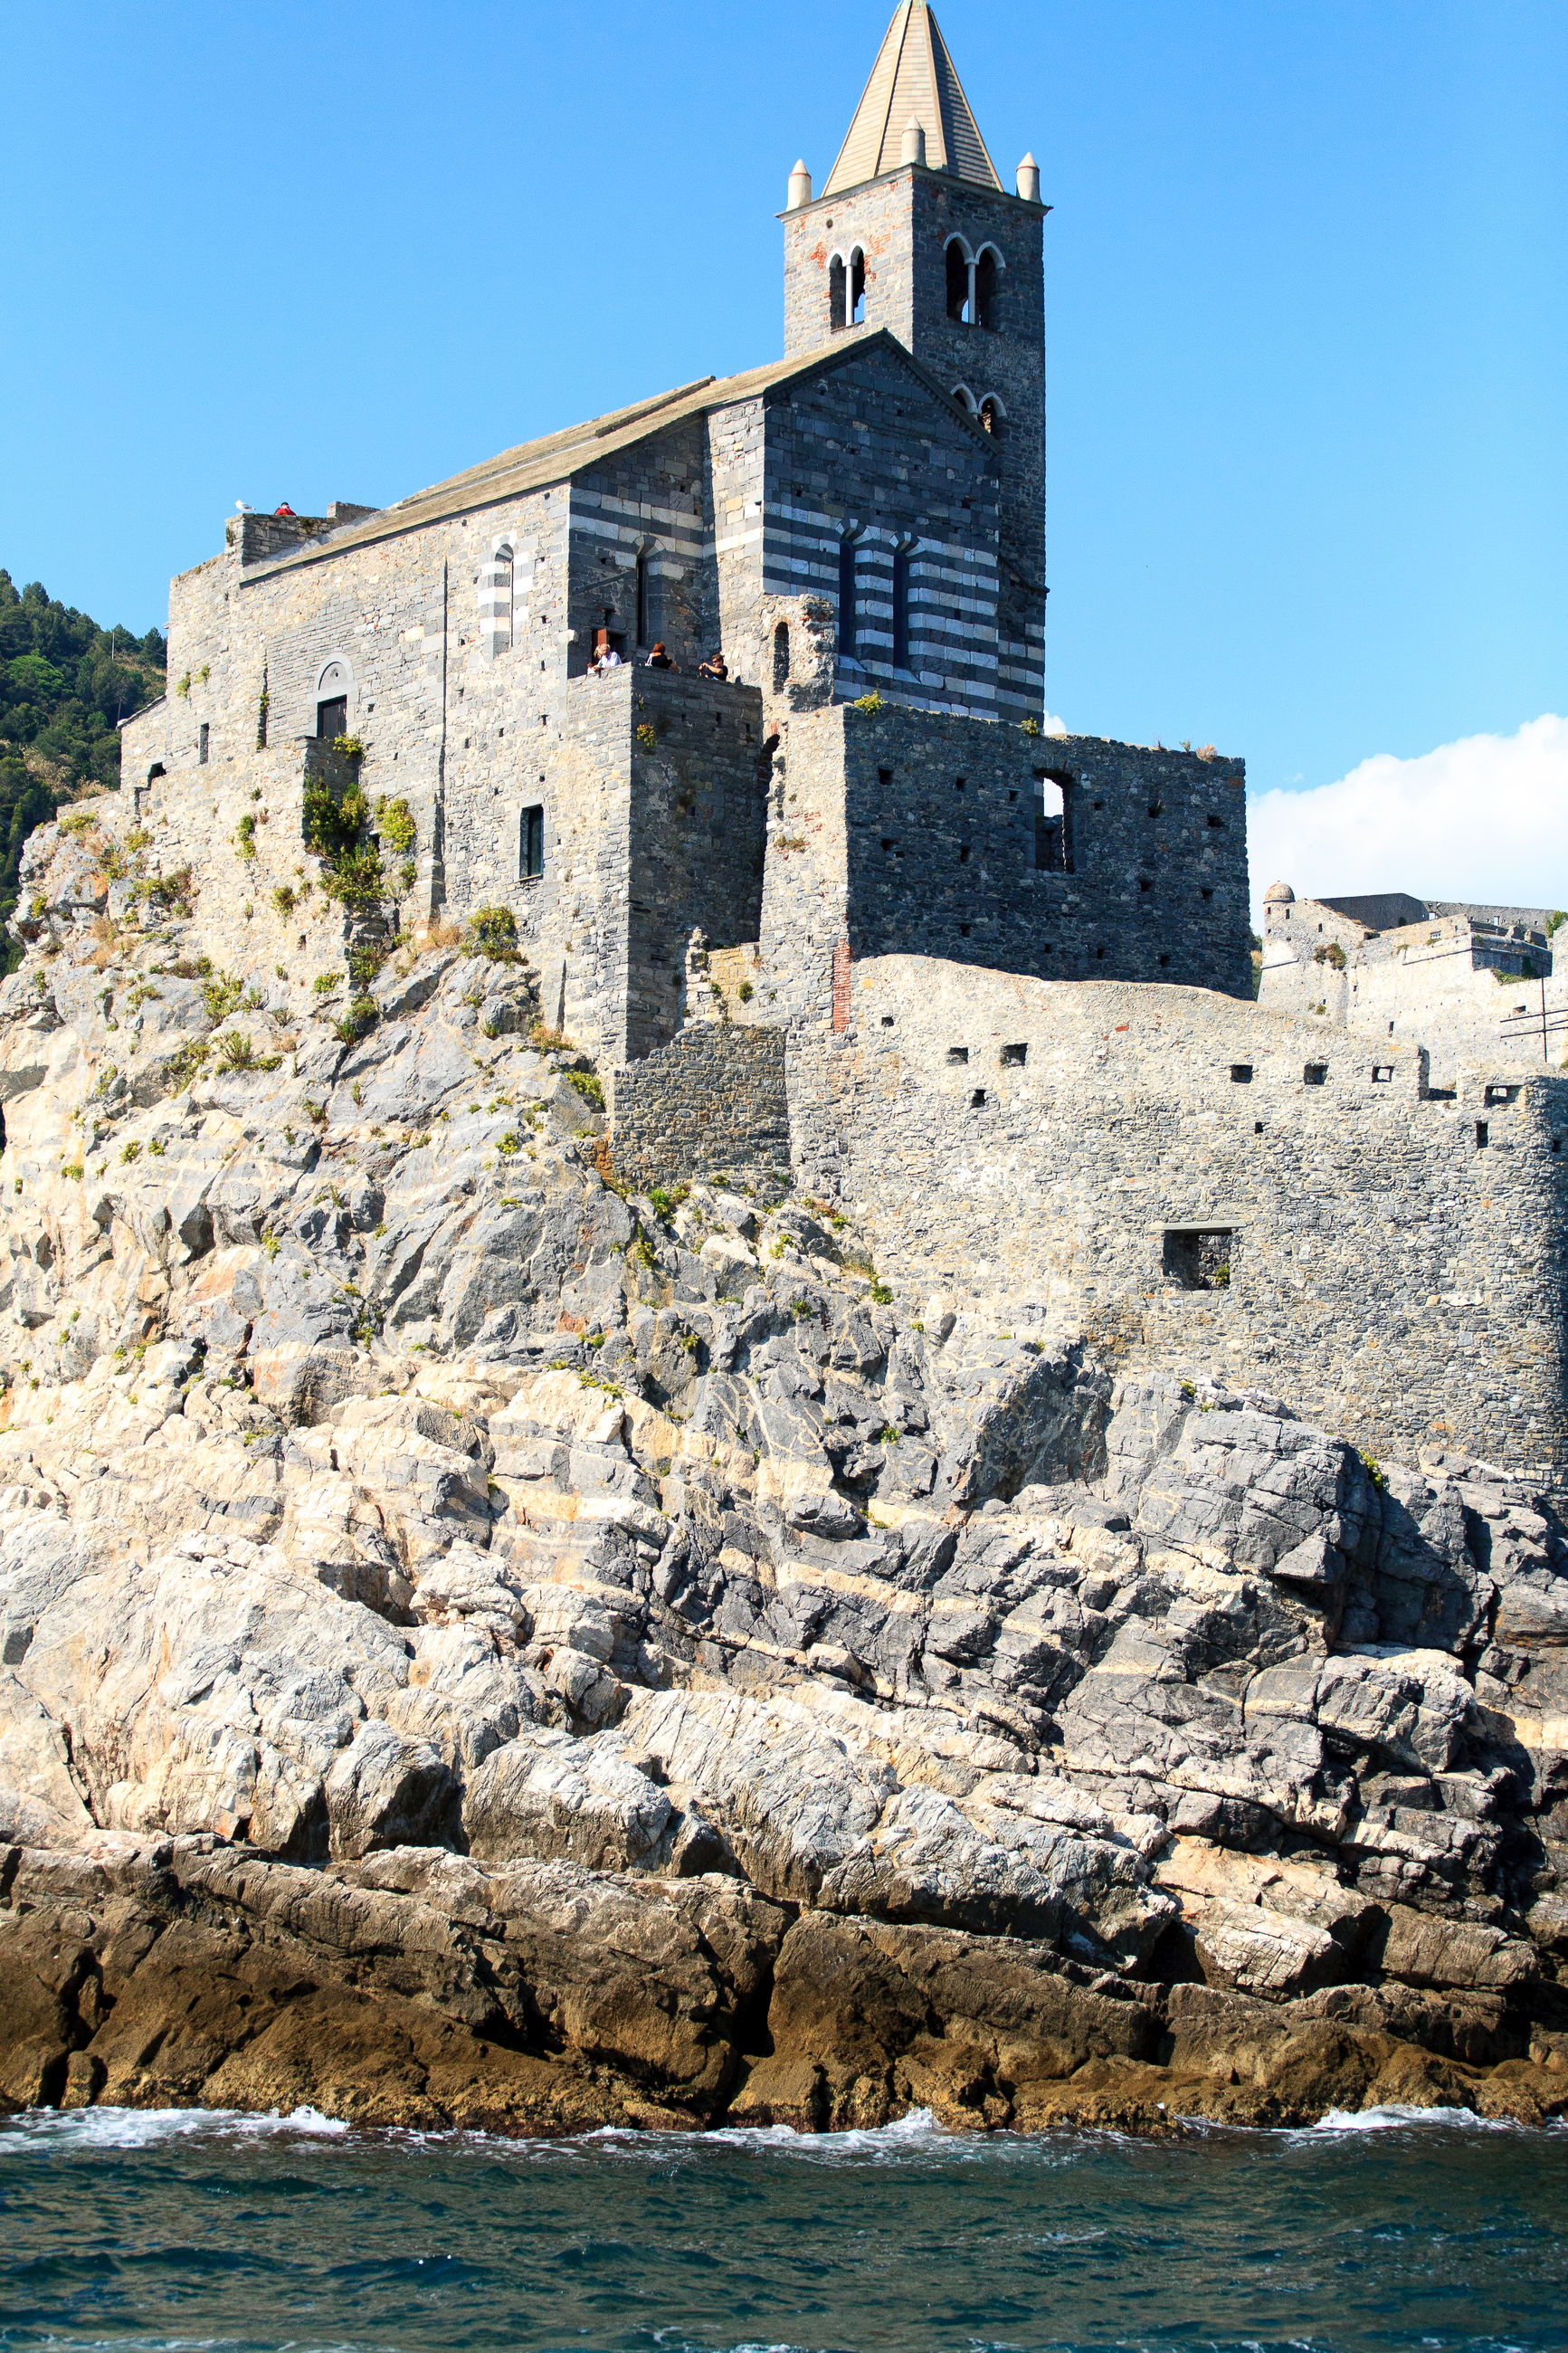 built structure, architecture, building exterior, clear sky, low angle view, outdoors, day, blue, medieval, no people, history, fortress, fortified wall, fort